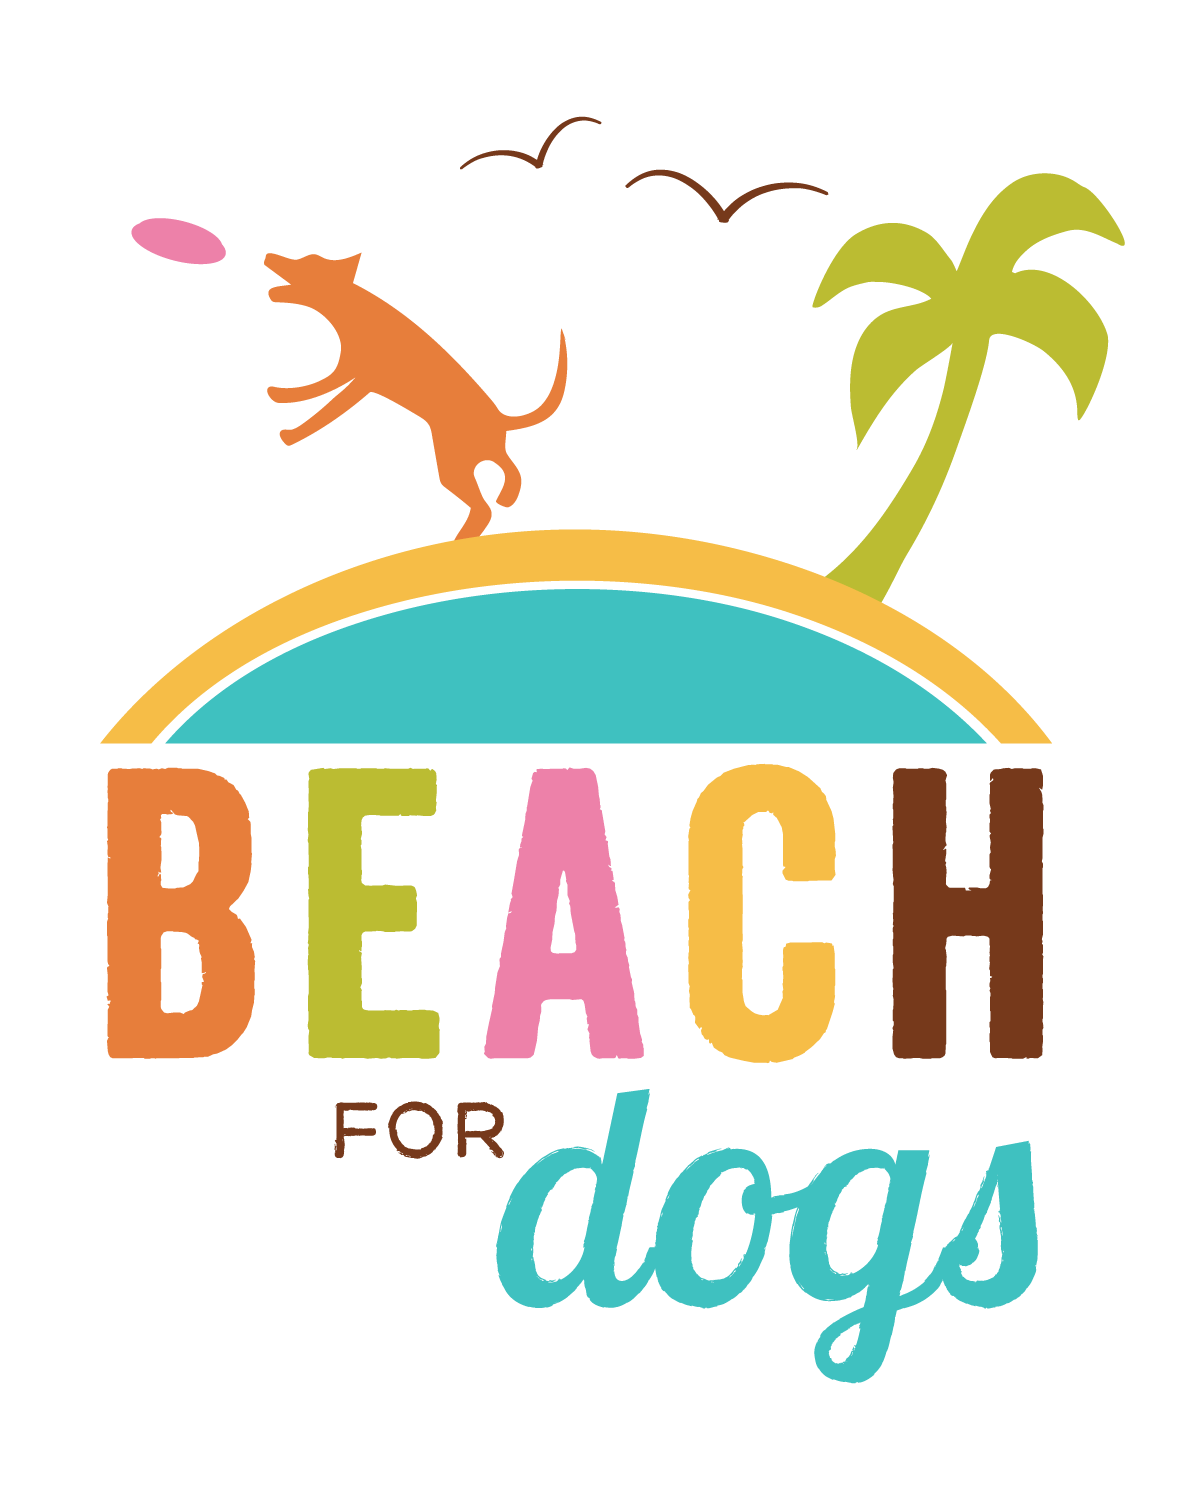 Beach For Dogs